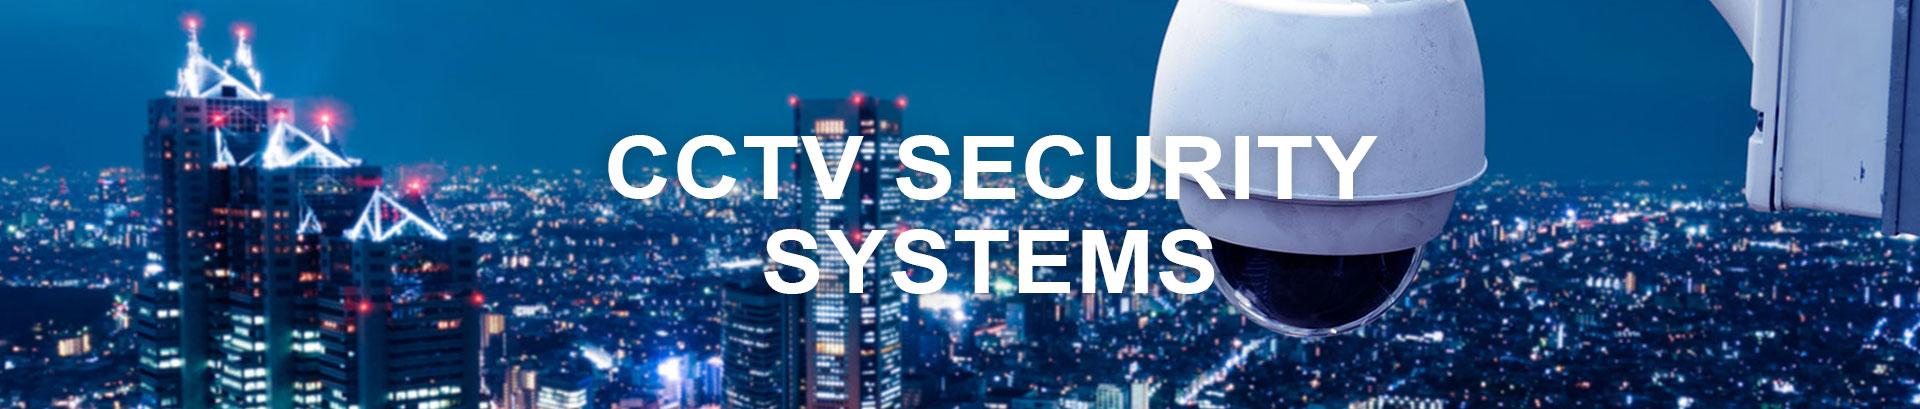 CCTV Security Systems - Pacey Electrical